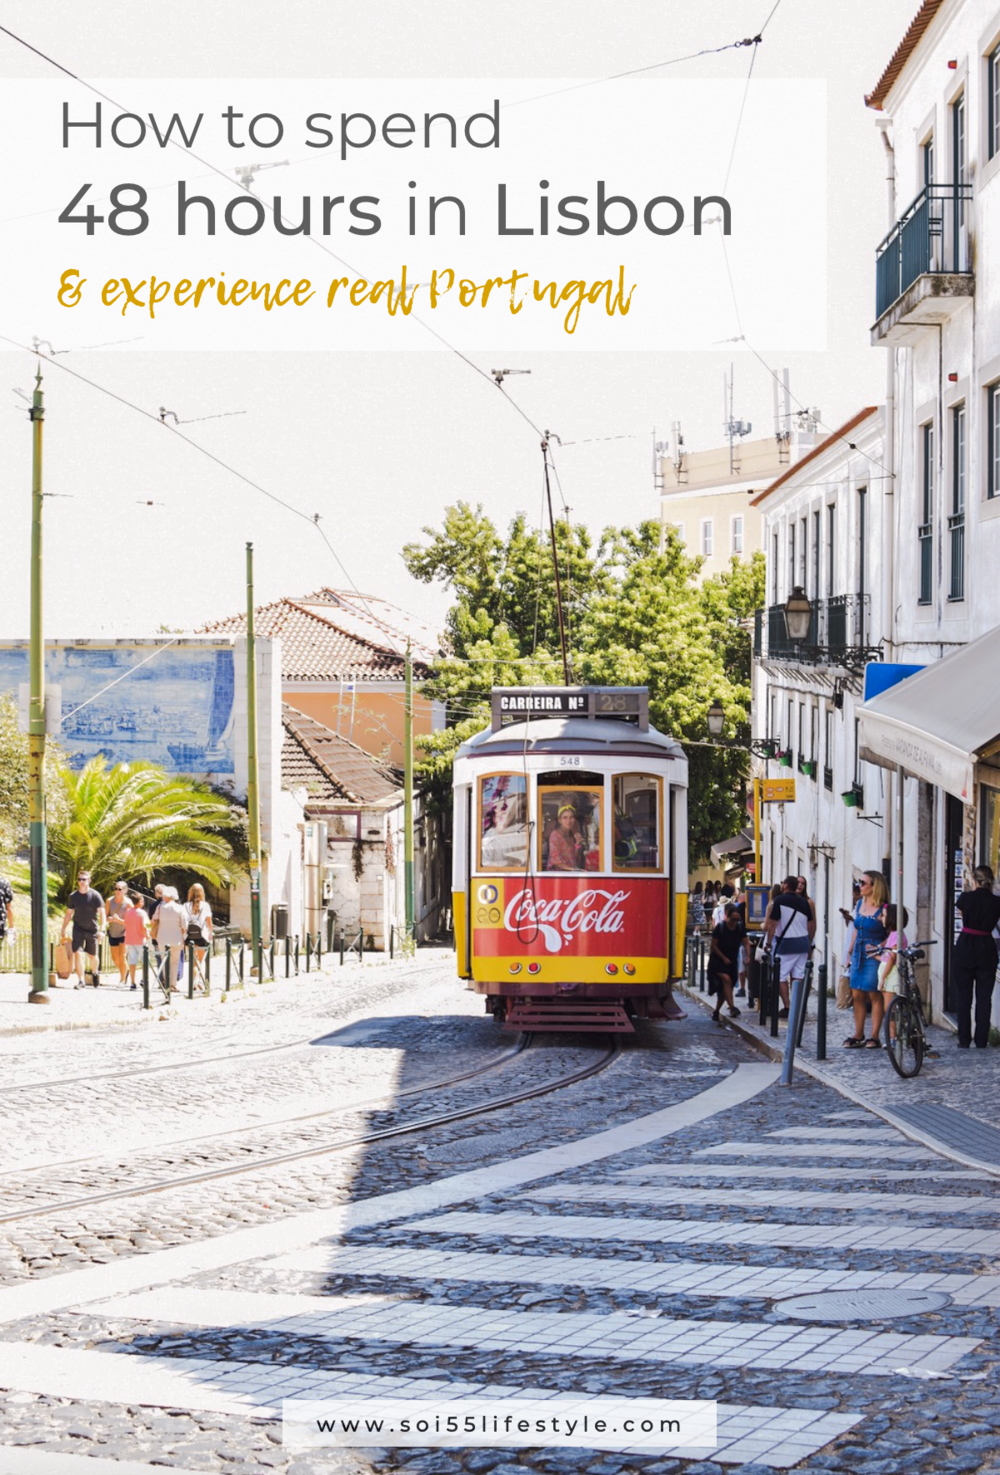 how-to-spend-48-hours-in-lisbon.jpg